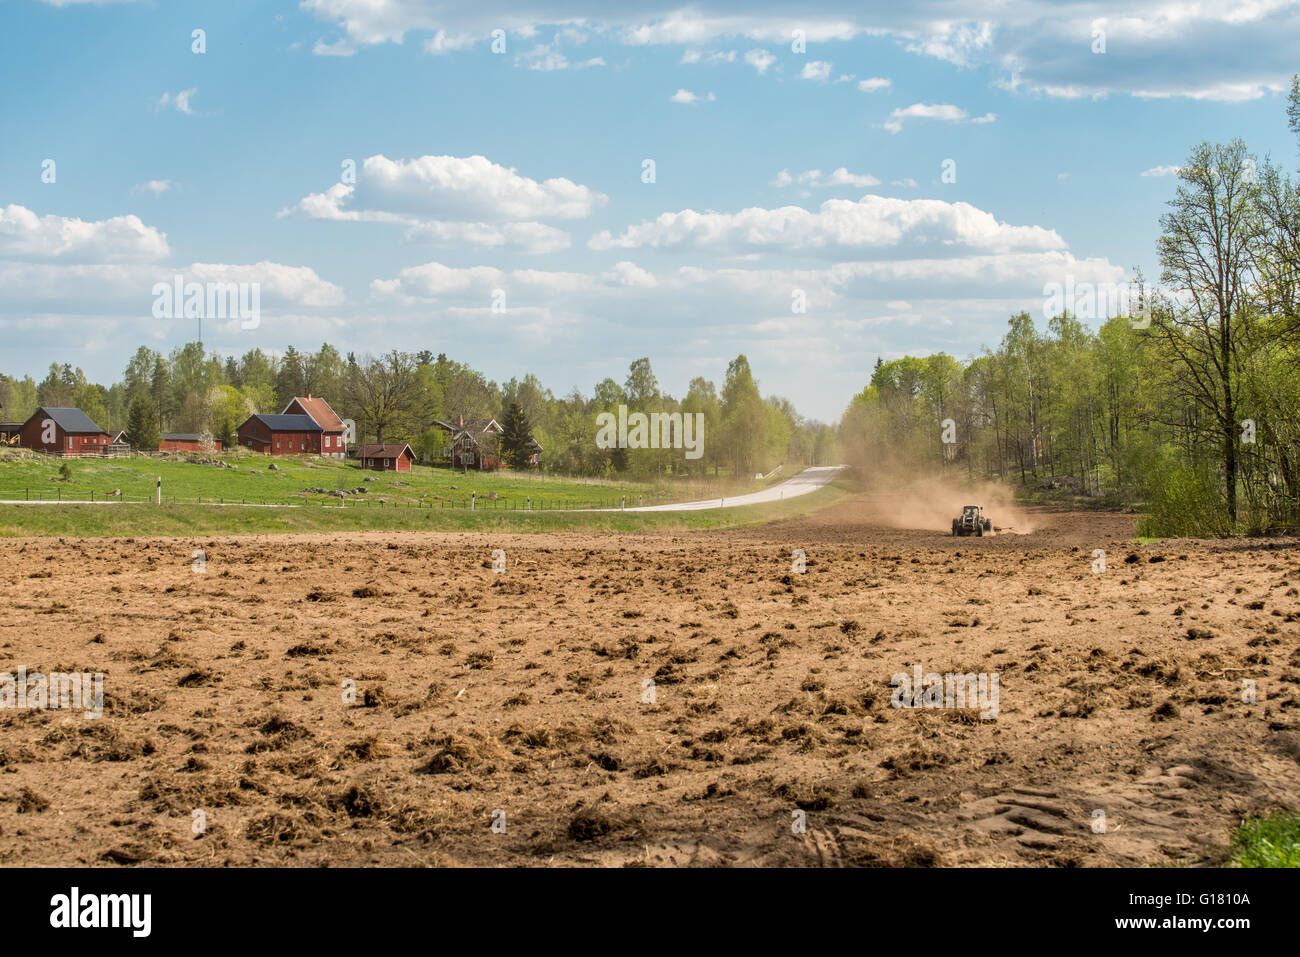 Tractor plowing fields during spring in county Östergötland, Sweden. - Stock Image